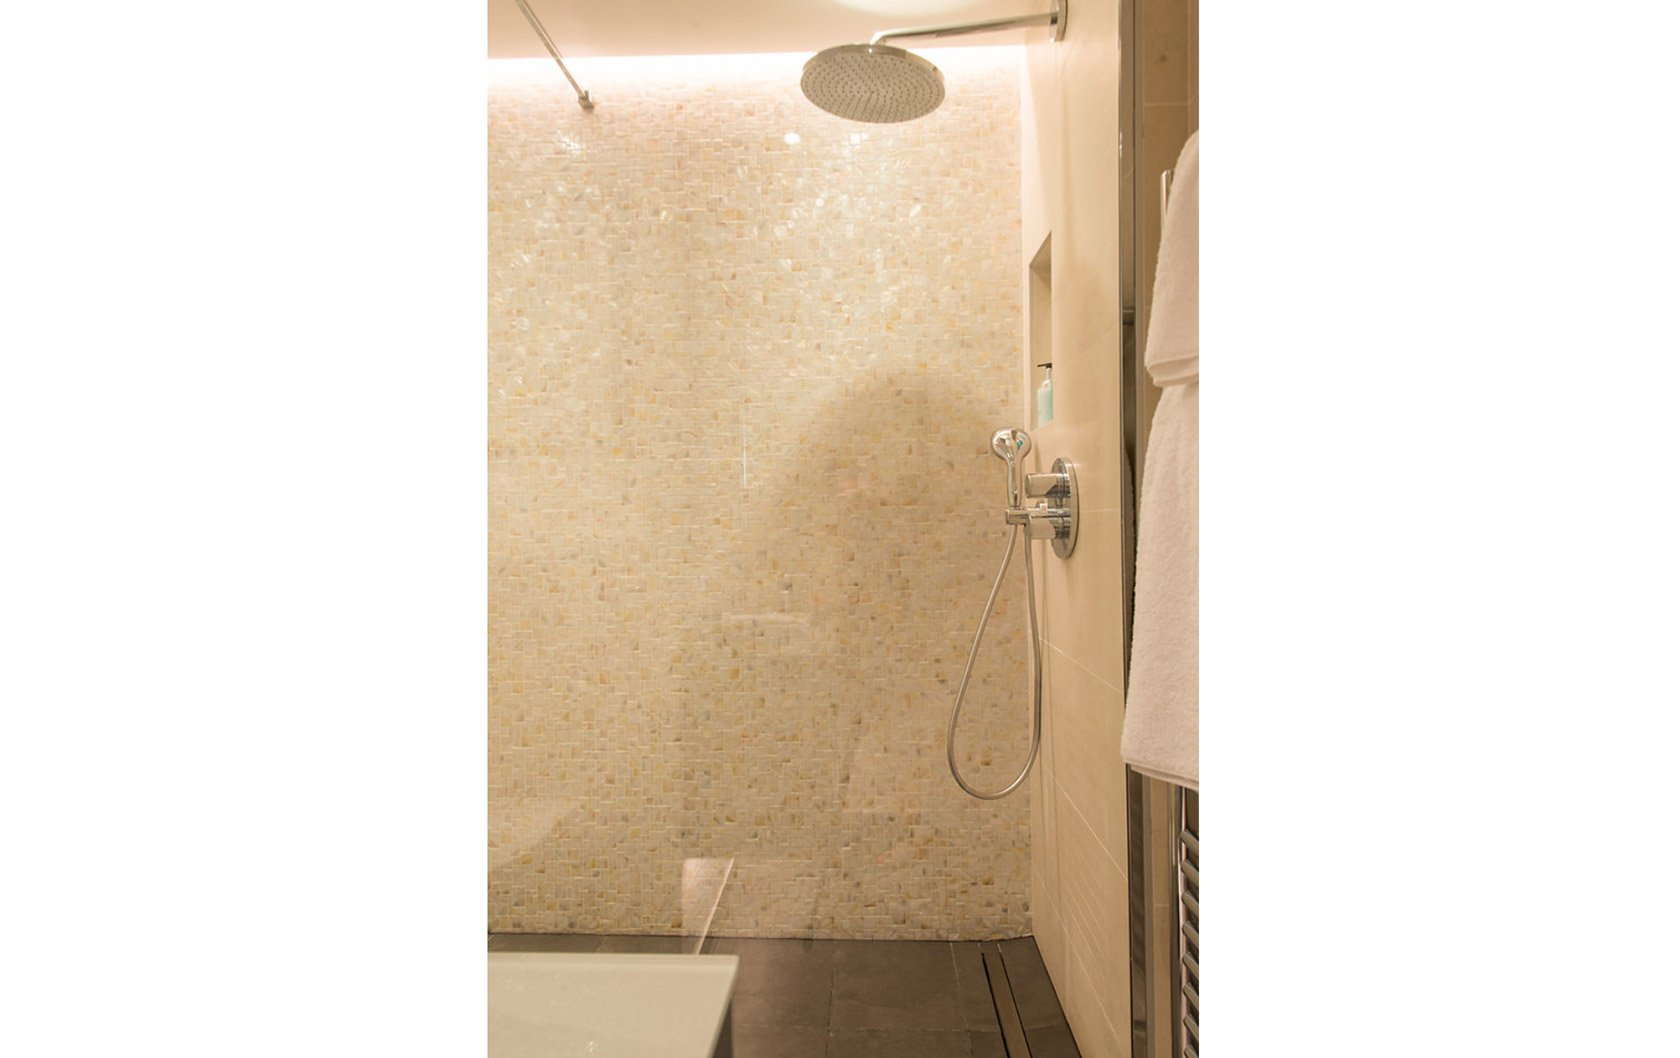 7c2-New-Merlot-master-bathroom-shower